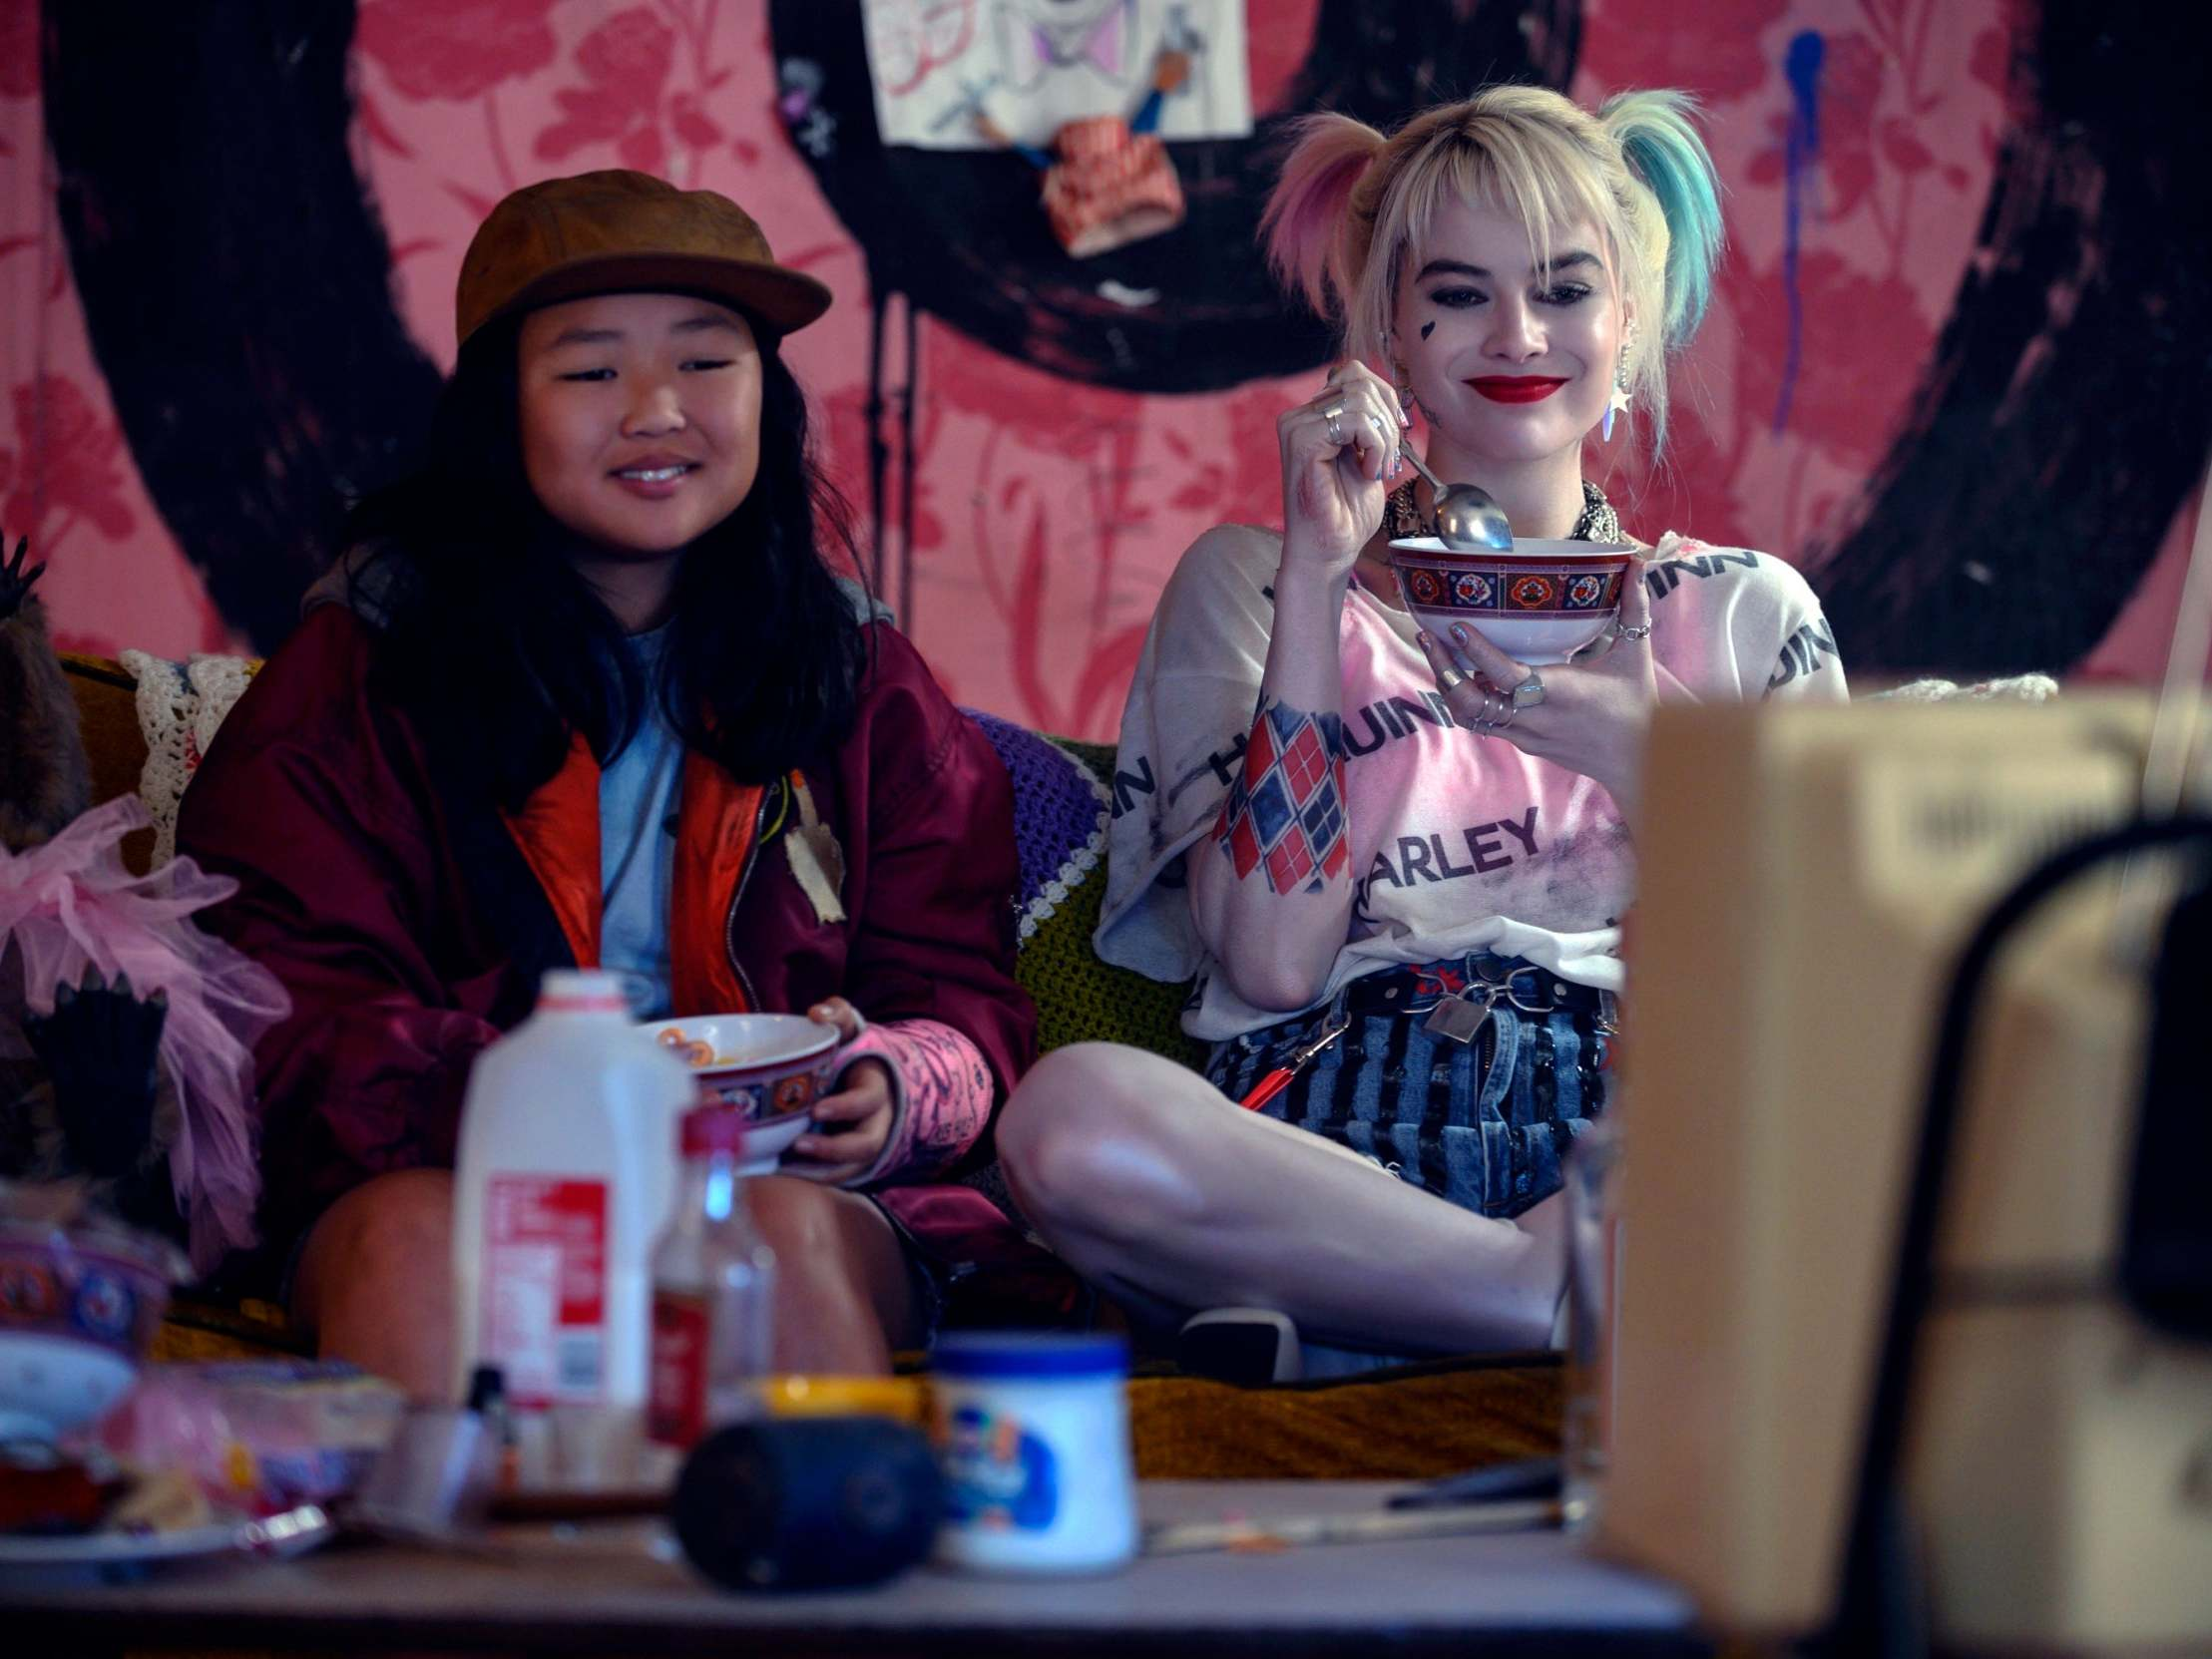 Birds Of Prey Review Its Sequin Encrusted Girliness And Bone Smashing Violence Is Harley Quinn Down To A Tee The Independent The Independent